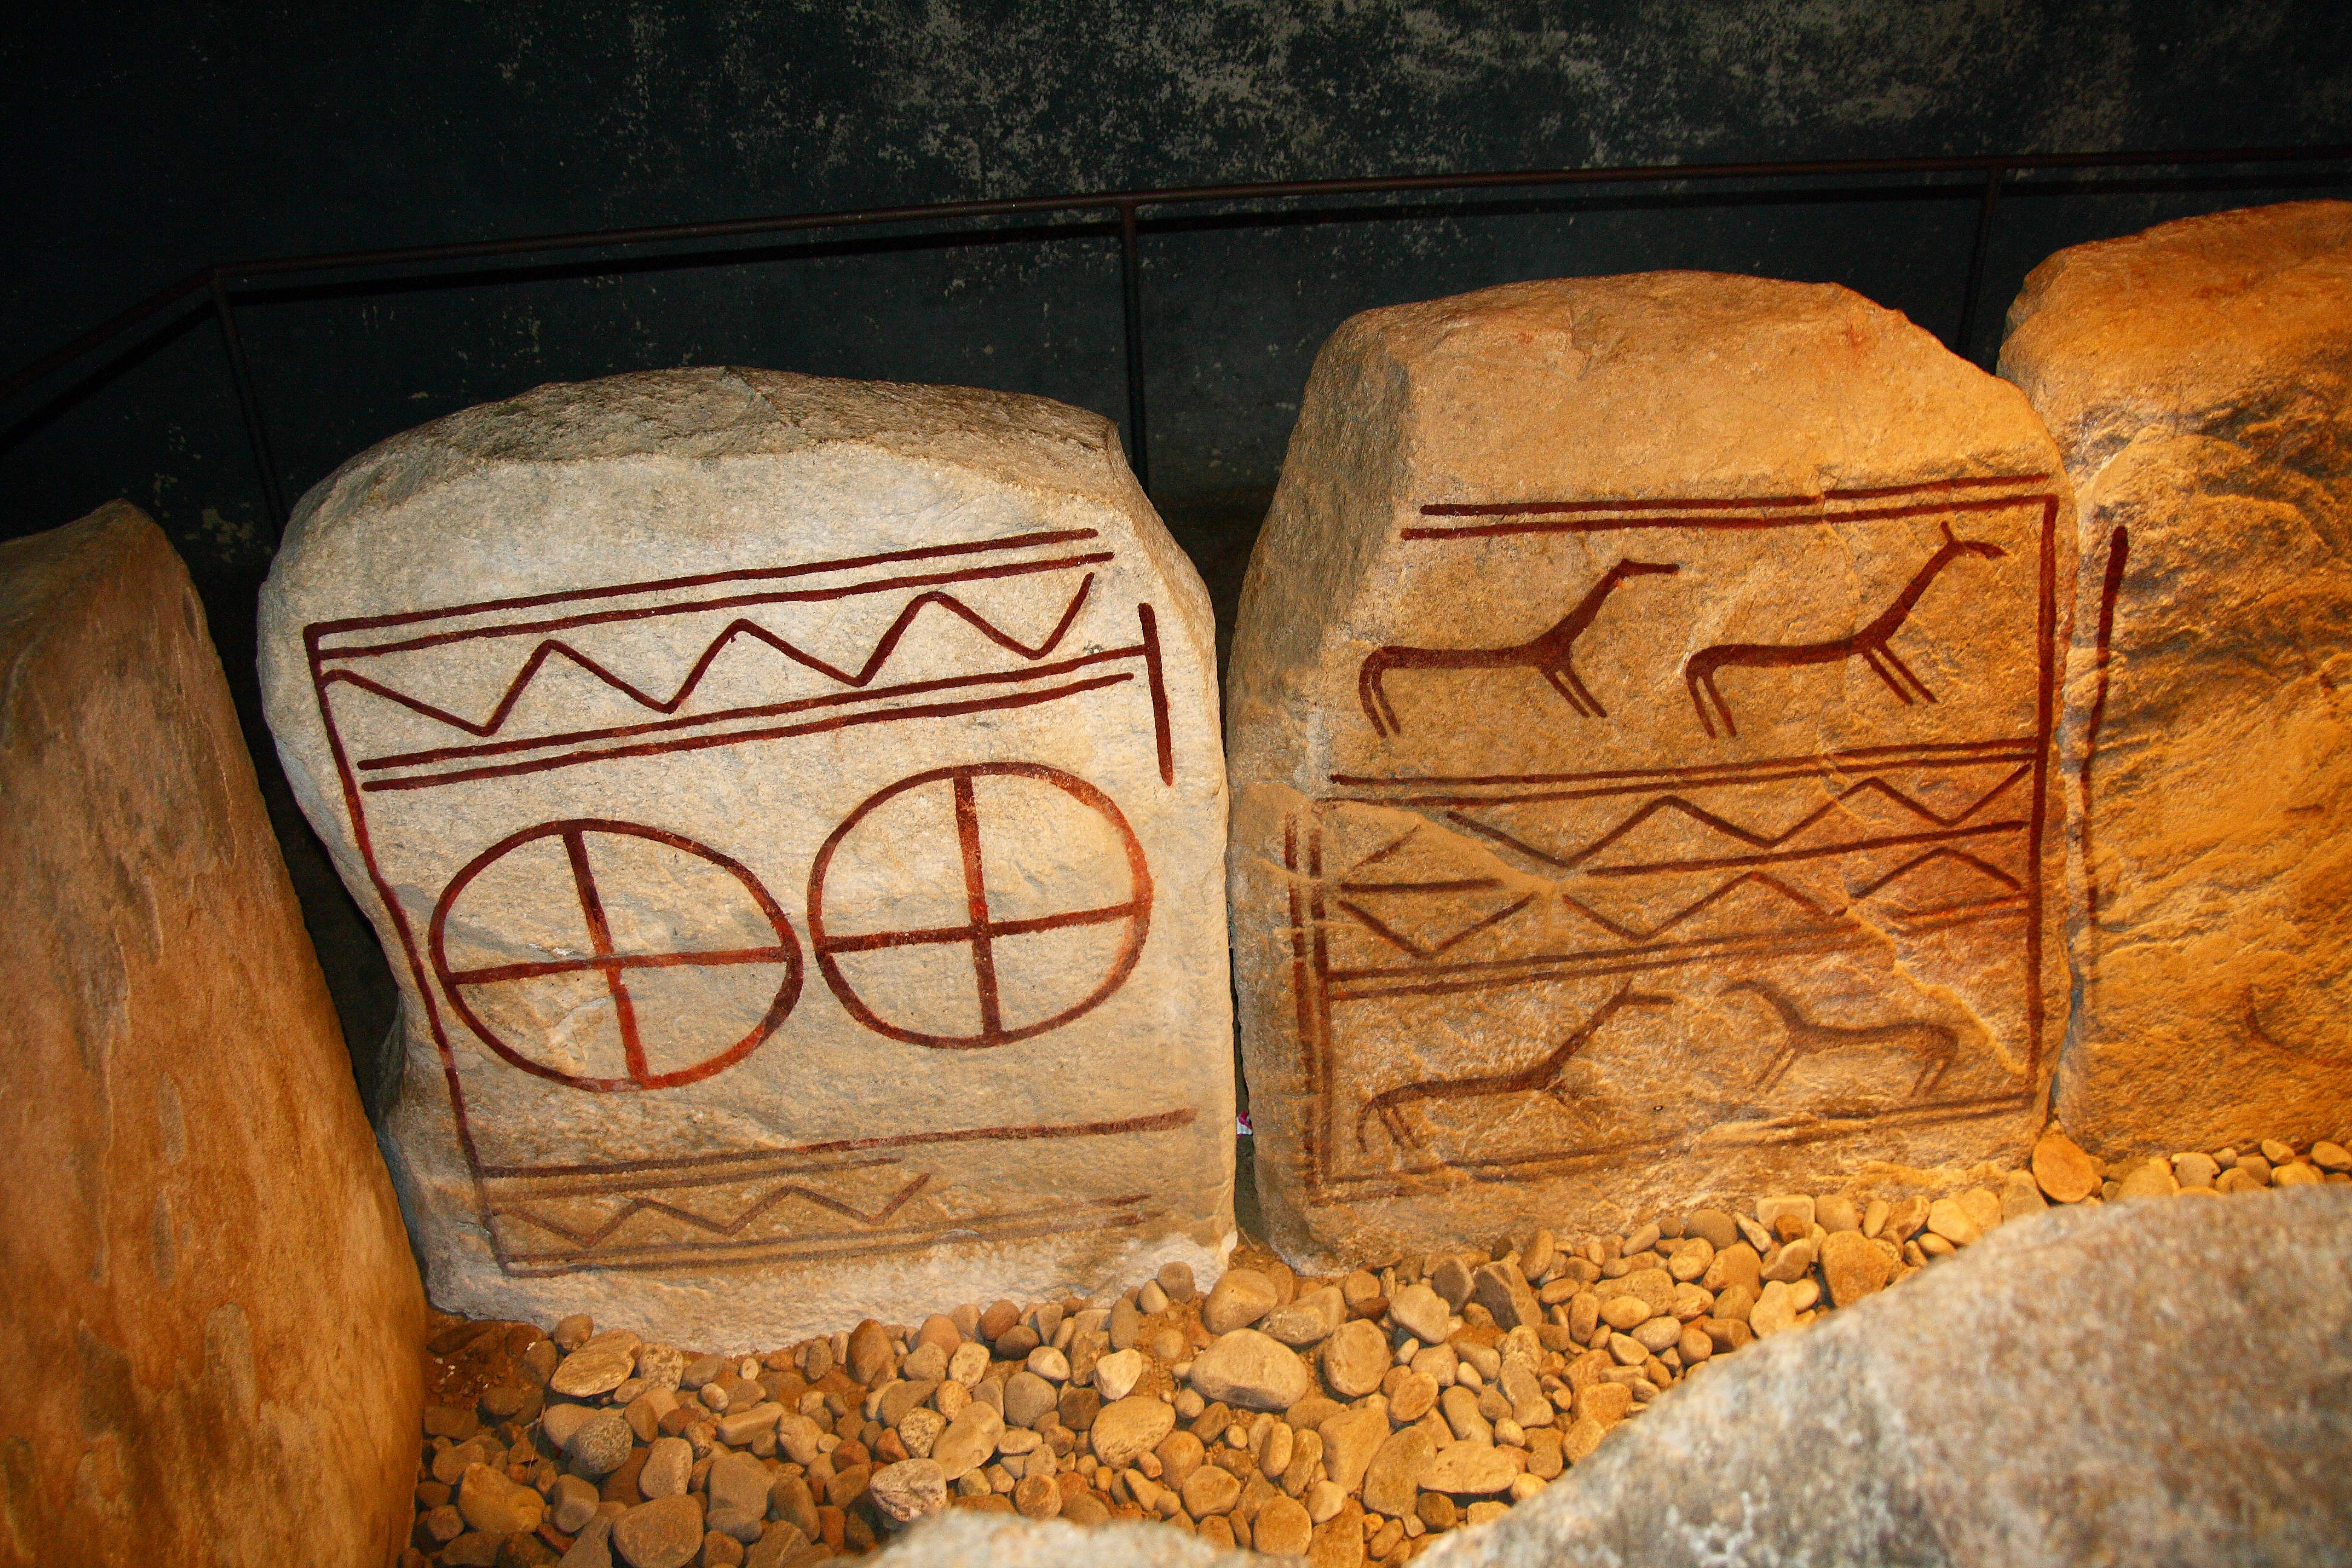 The swastika its ancient origins and modern misuse norse two sunwheels on a bronze age burial stone in kivik sweden buycottarizona